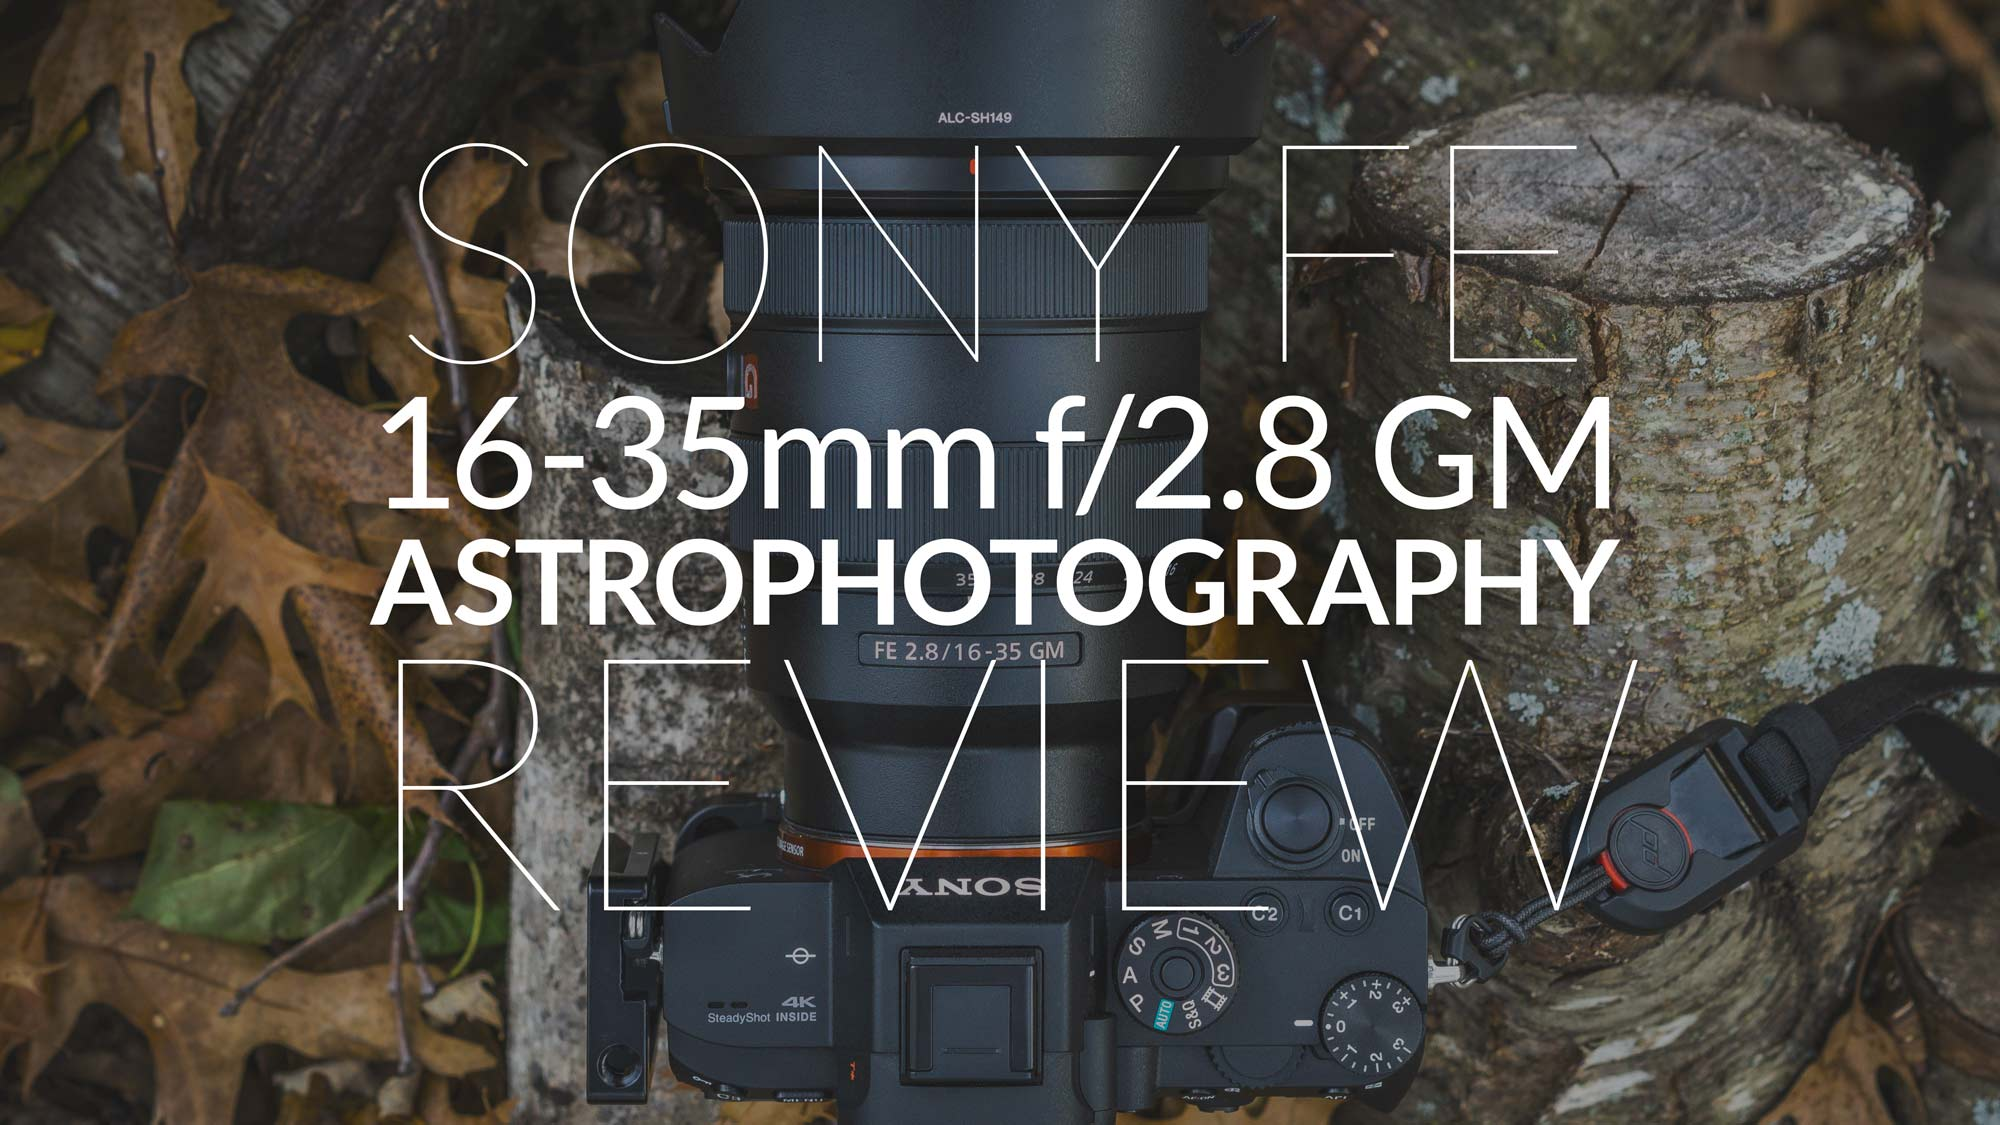 Sony FE 16-35mm f/2.8 GM Astrophotography Review